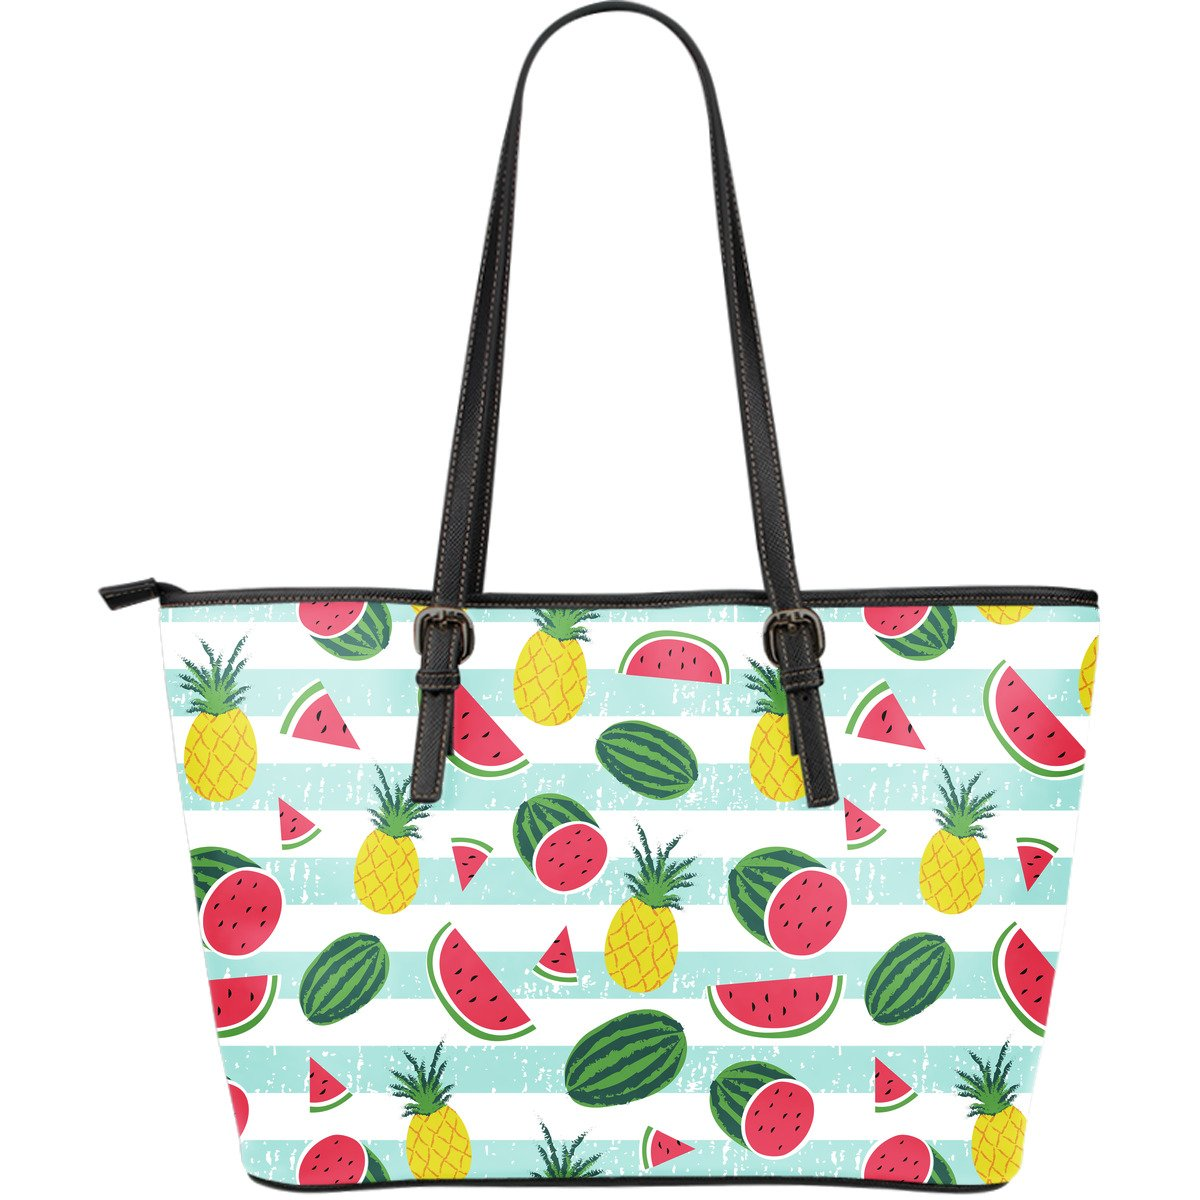 Cute Pineapple Watermelon Pattern Print Leather Tote Bag GearFrost